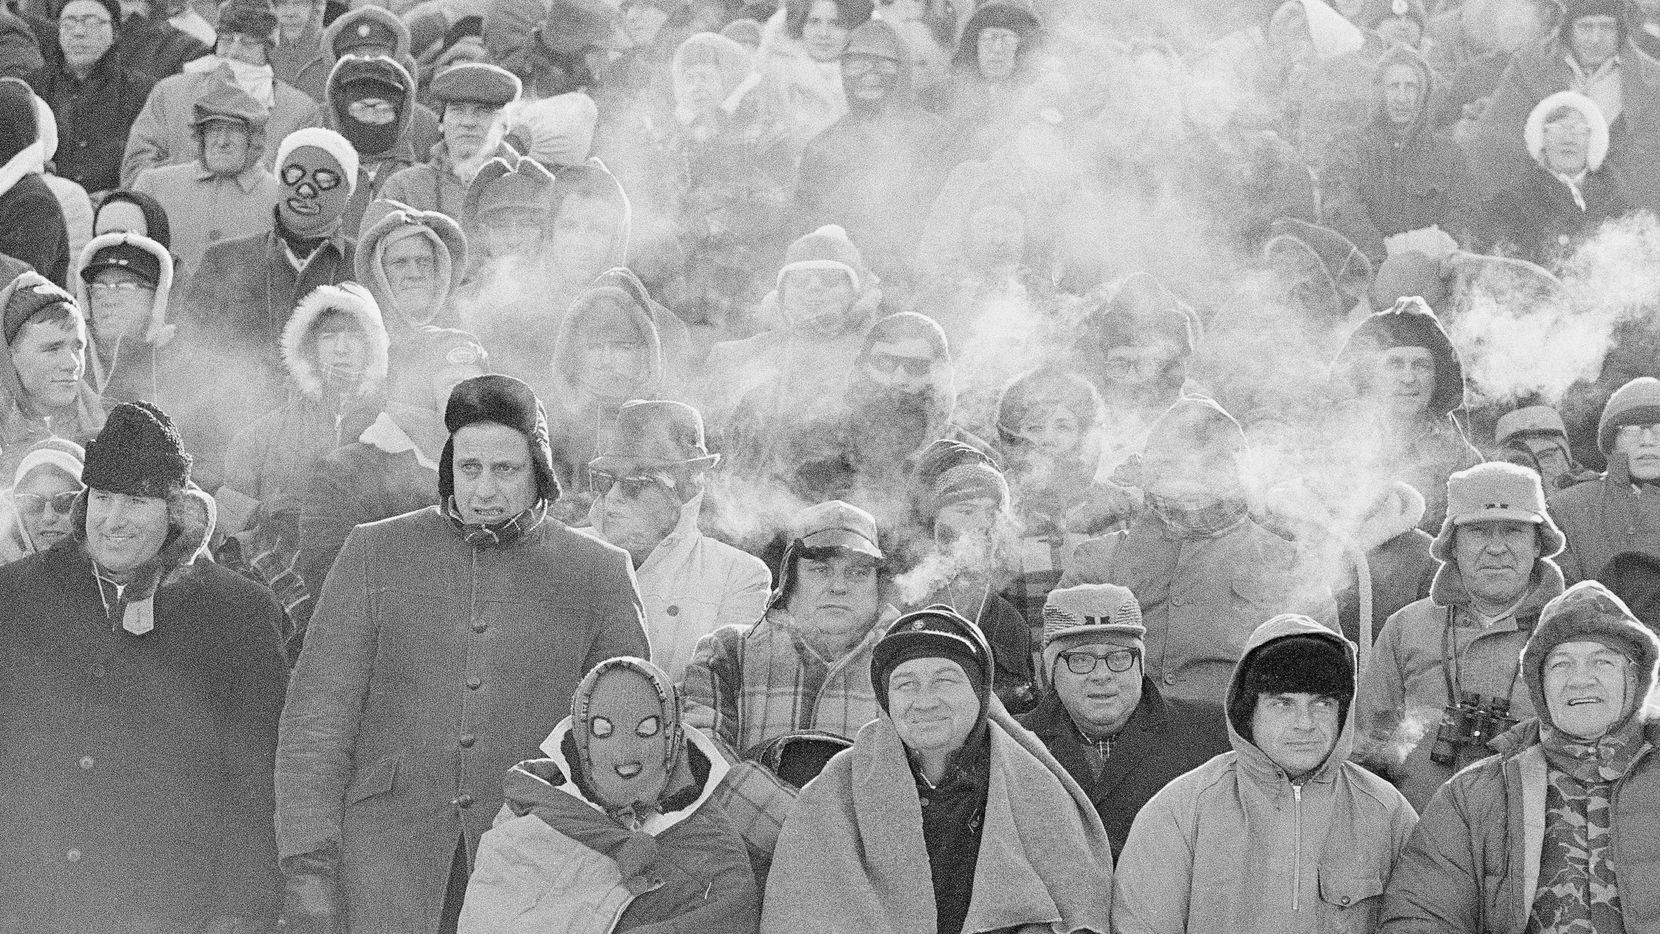 FILE - In this Dec. 31, 1967 file photo, fans watch the Green Bay Packers play the Dallas Cowboys in the NFL Championship game in Green Bay, Wisc. Comparisons to the legendary 1967 Ice Bowl are inevitable when the mercury dips below zero at Lambeau Field.